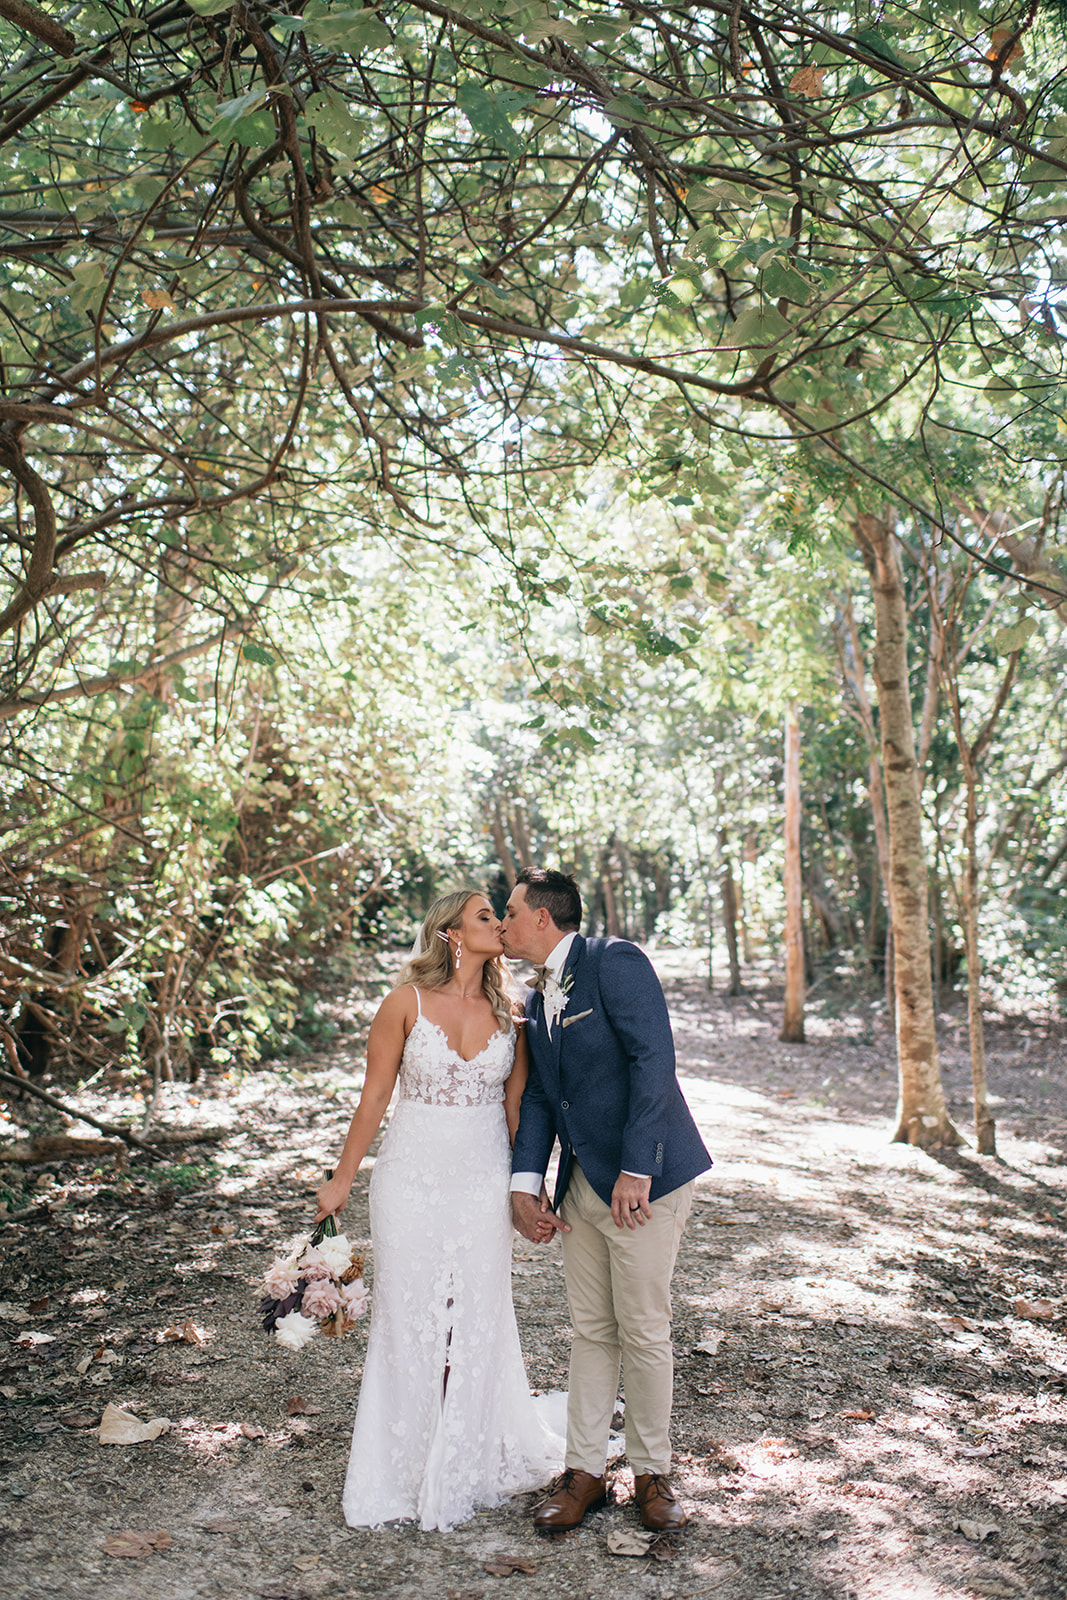 figtree pictures ancora tweed heads wedding gold coast giveaway florals venue cake bridal gown videography